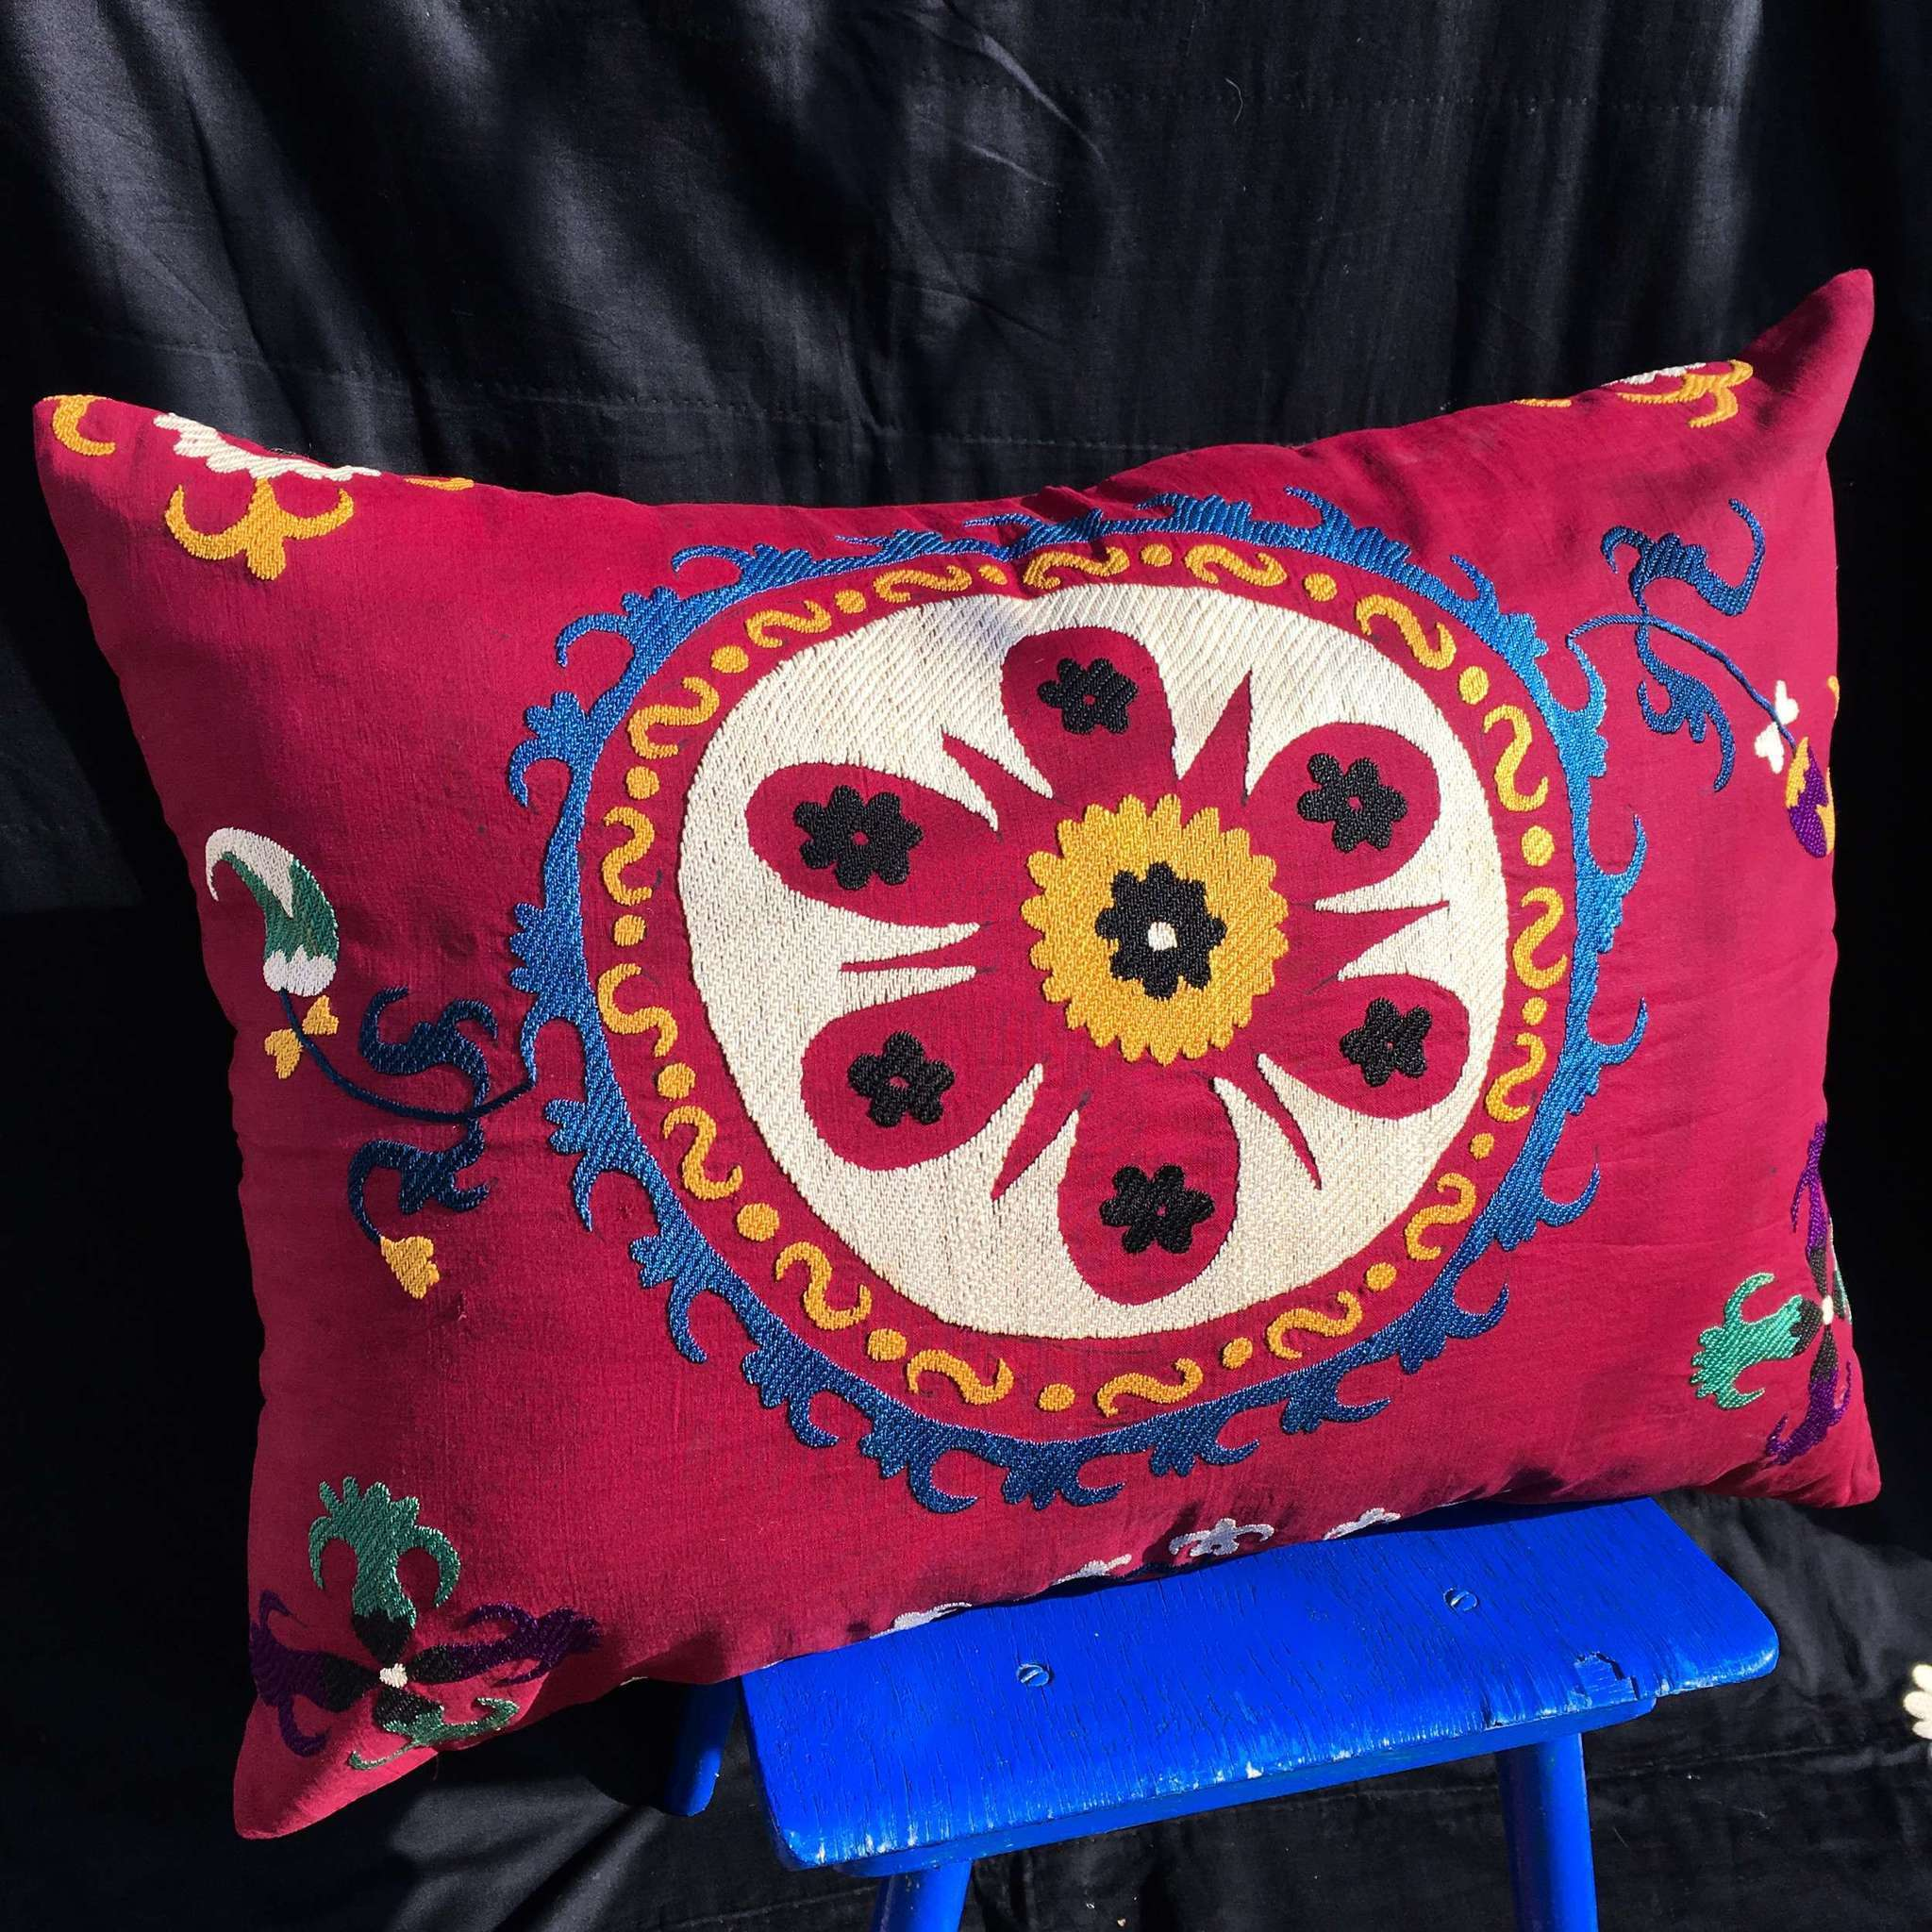 Faded Ethnic Lumbar Pink Pillow cover 8 x 20 Suzani Body Pillow Made from a Vintage Uzbek Suzani